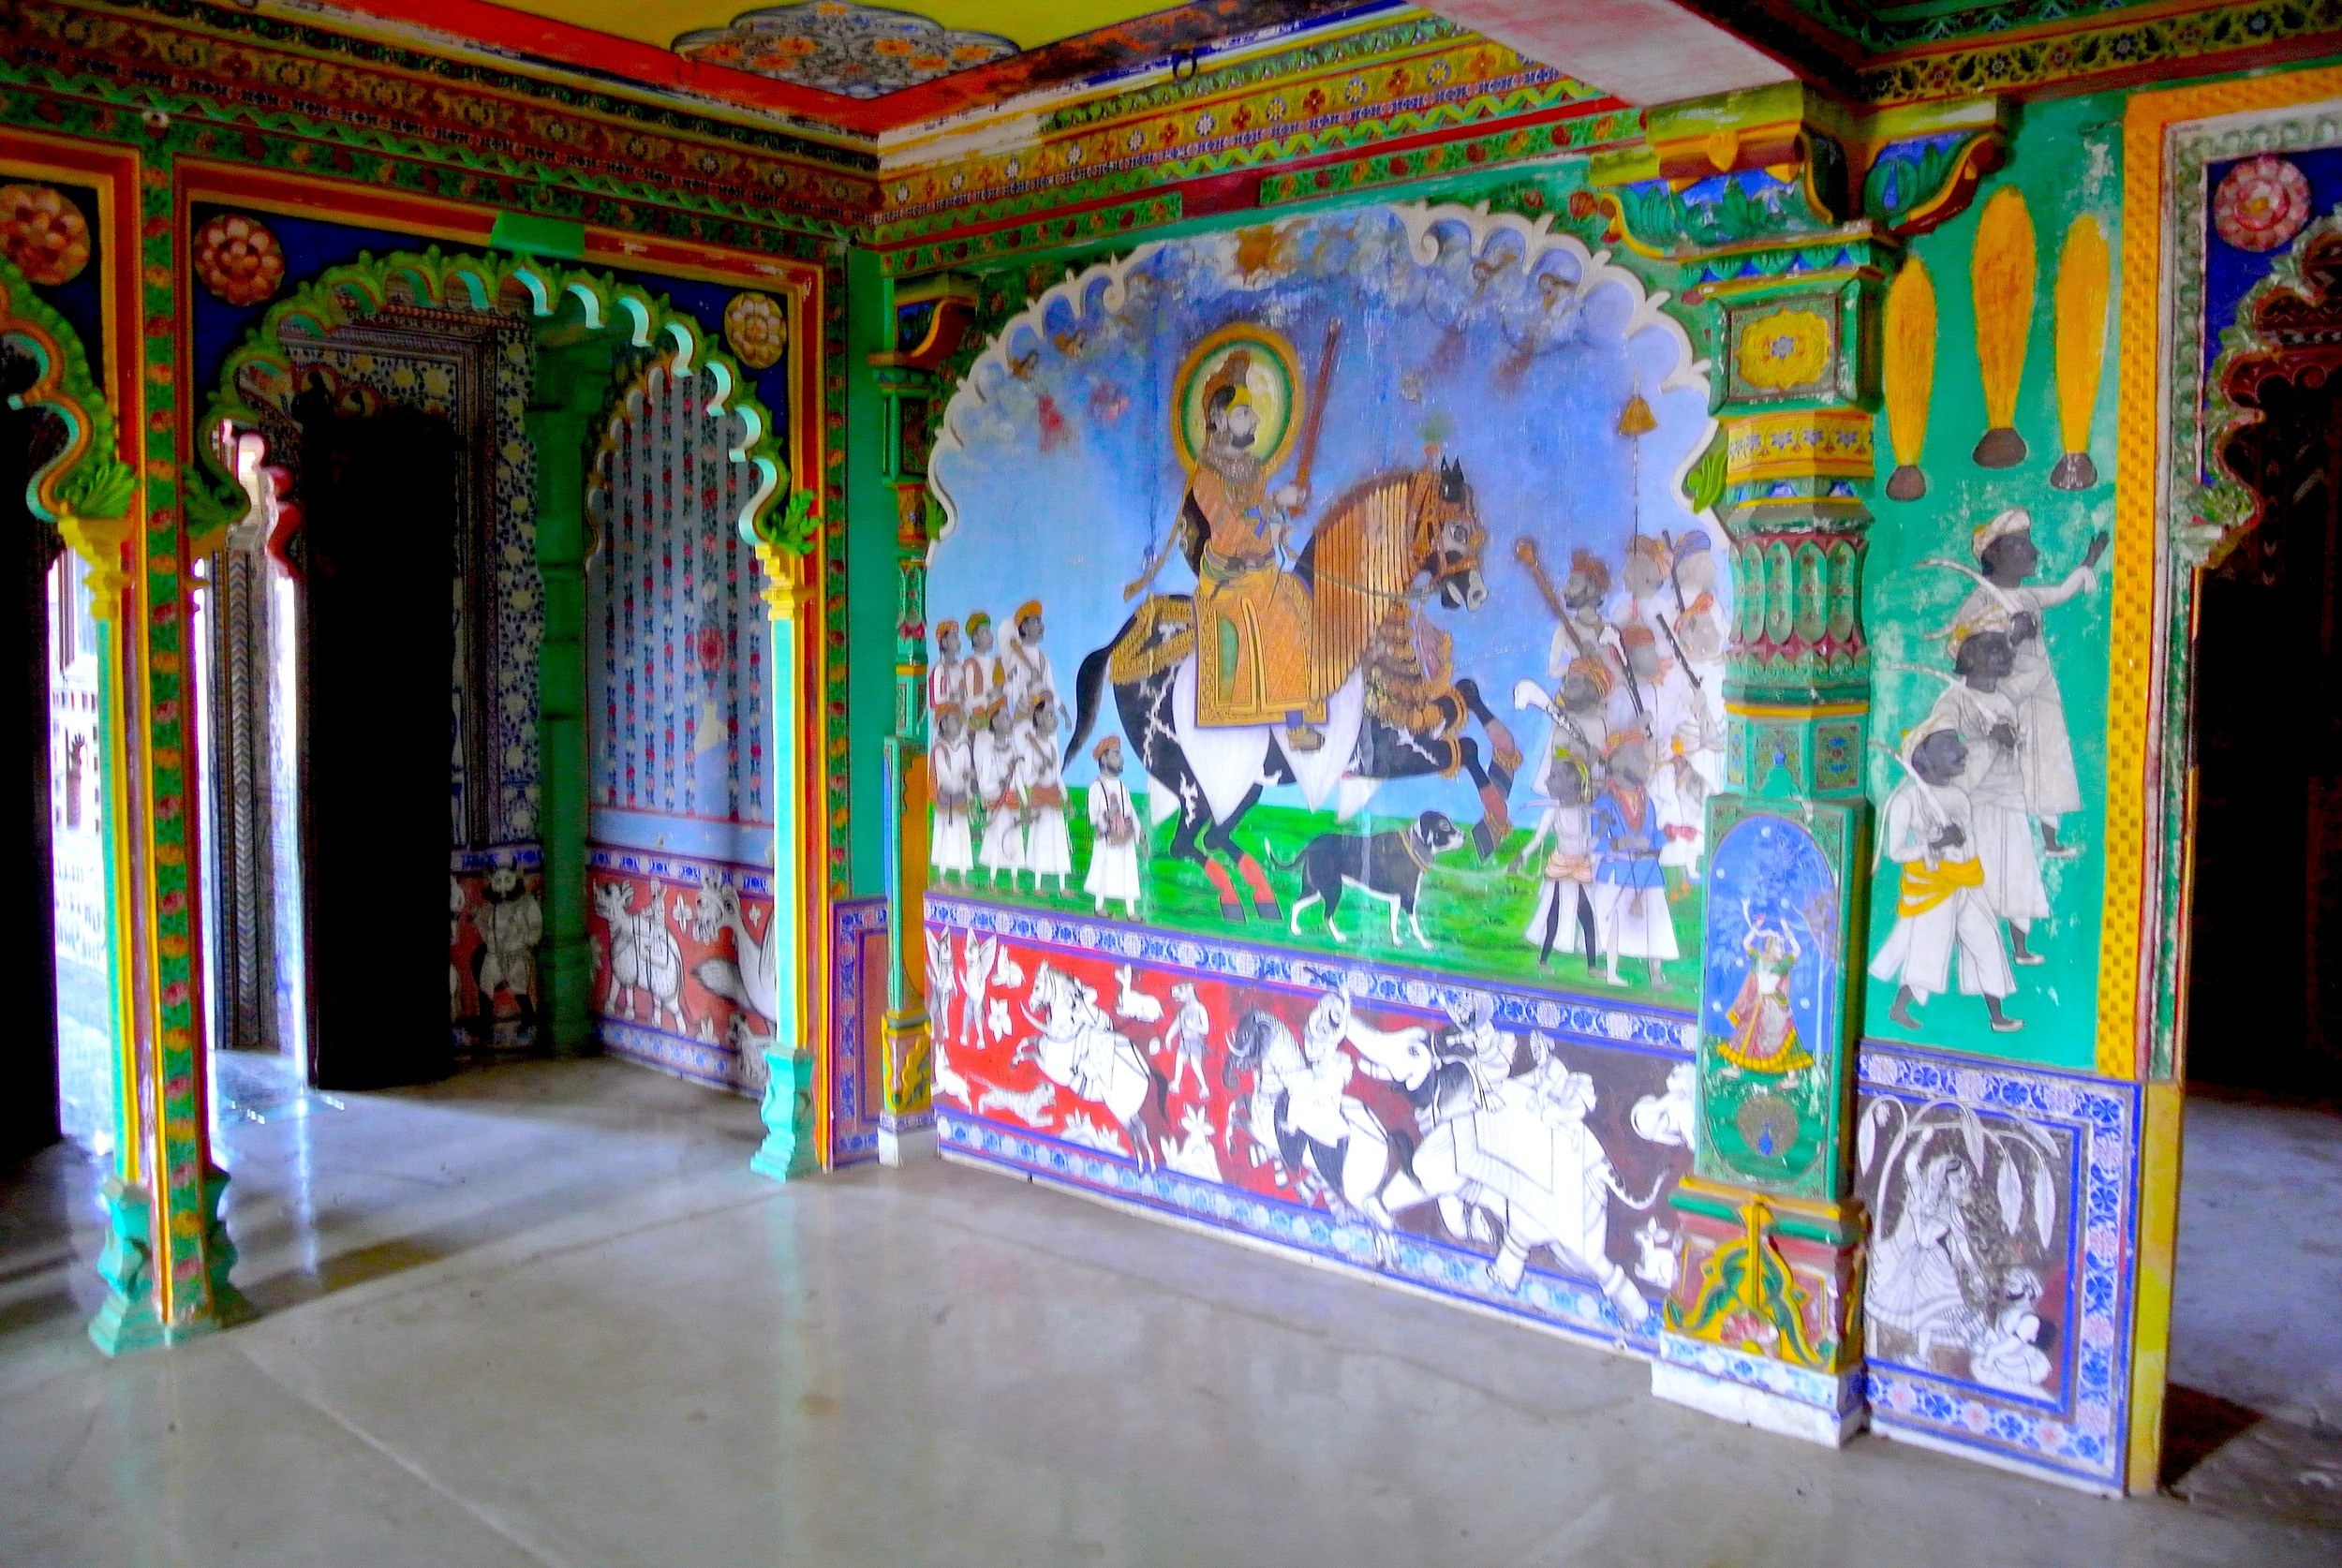 The brightly painted but fading walls of the Juna Mahal in Dungarpur, India